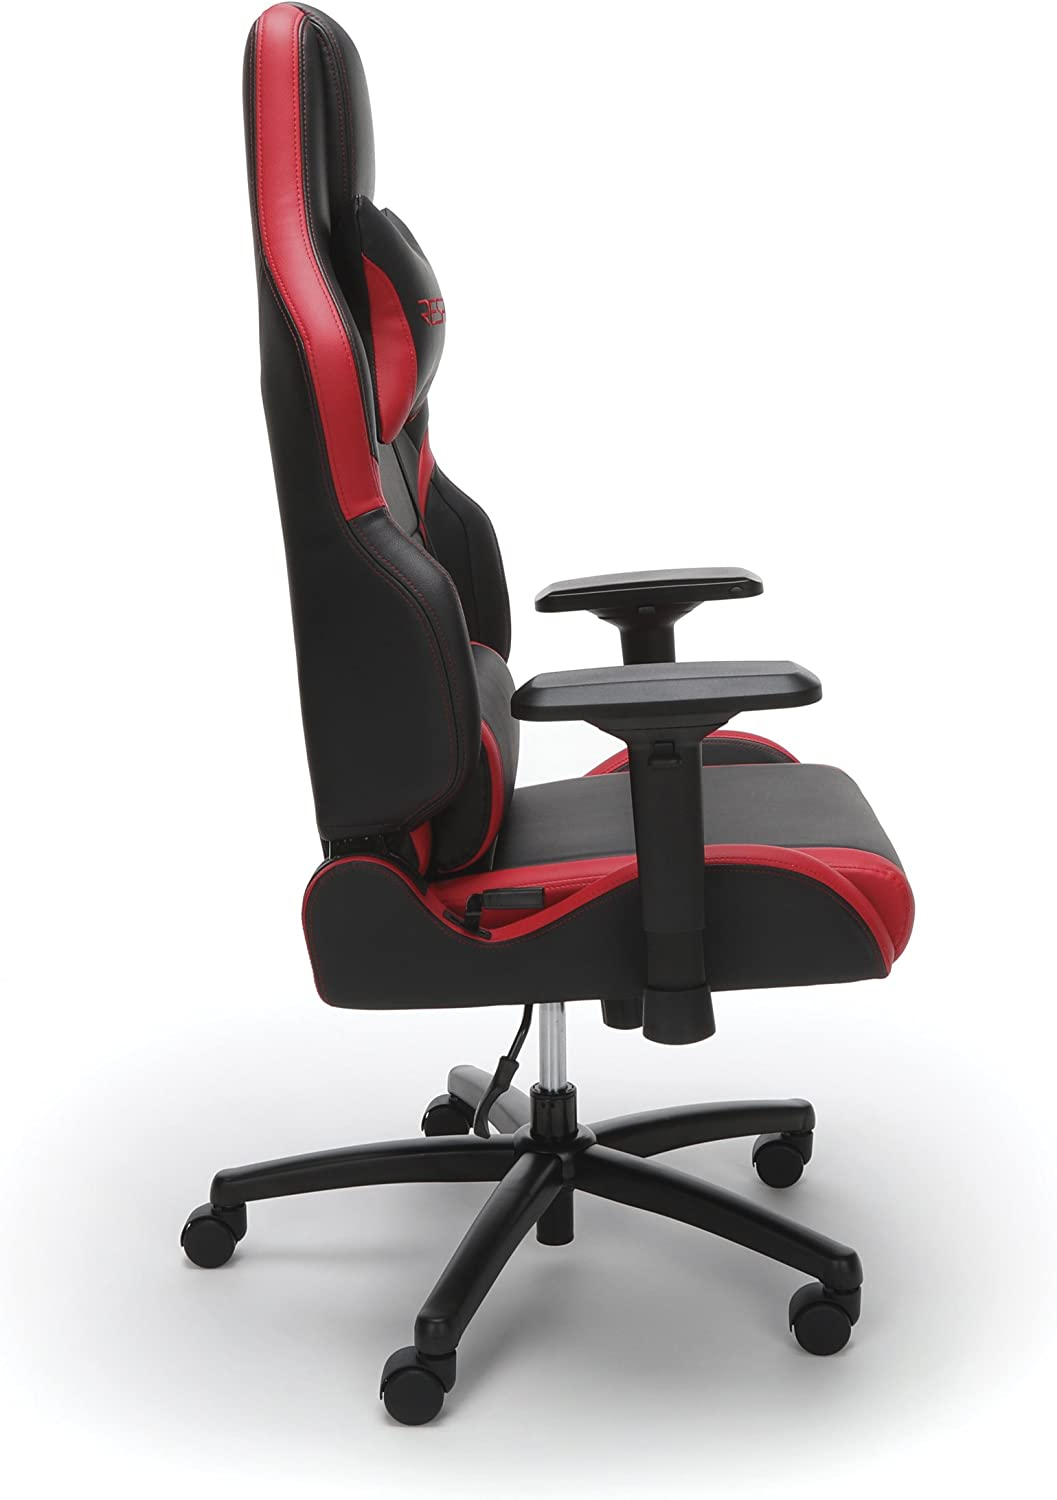 in Blue RESPAWN 400 Big and Tall Racing Style Gaming Chair